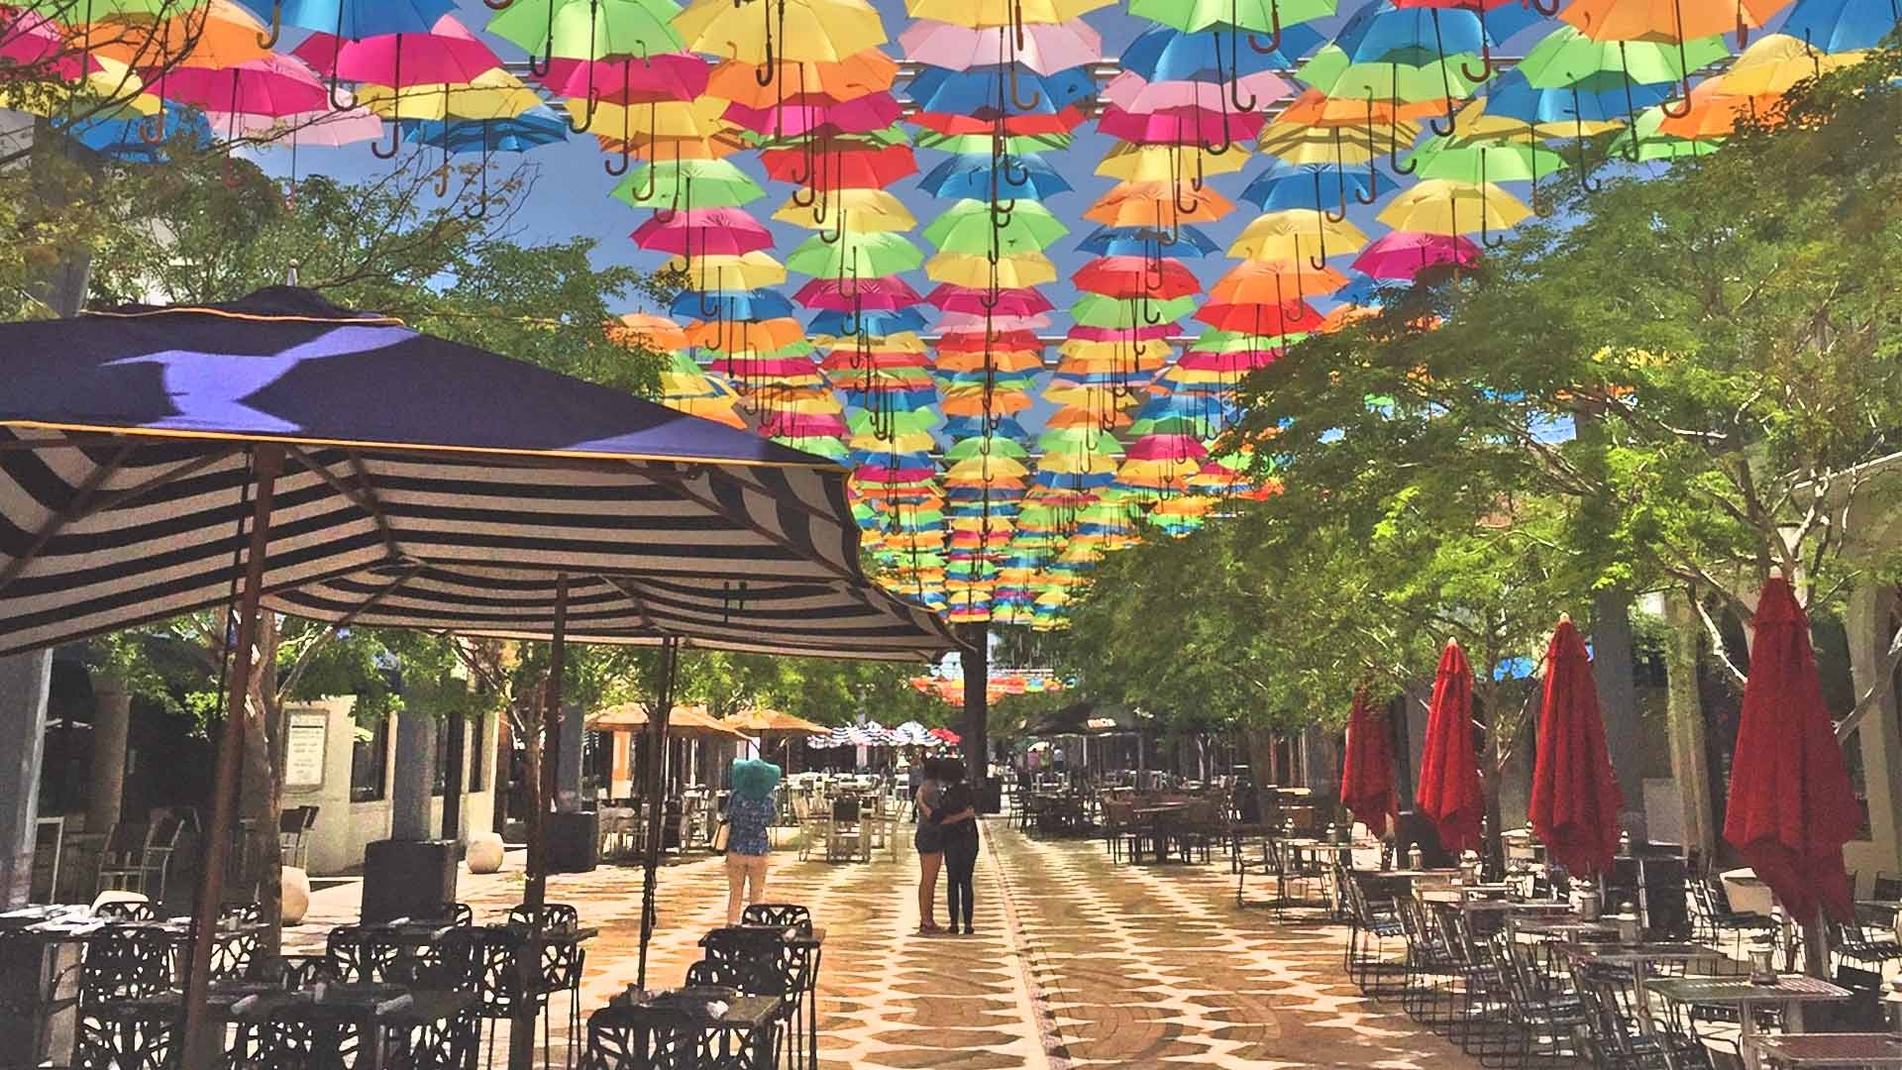 Umbrella Sky Project - Coral Gables'18